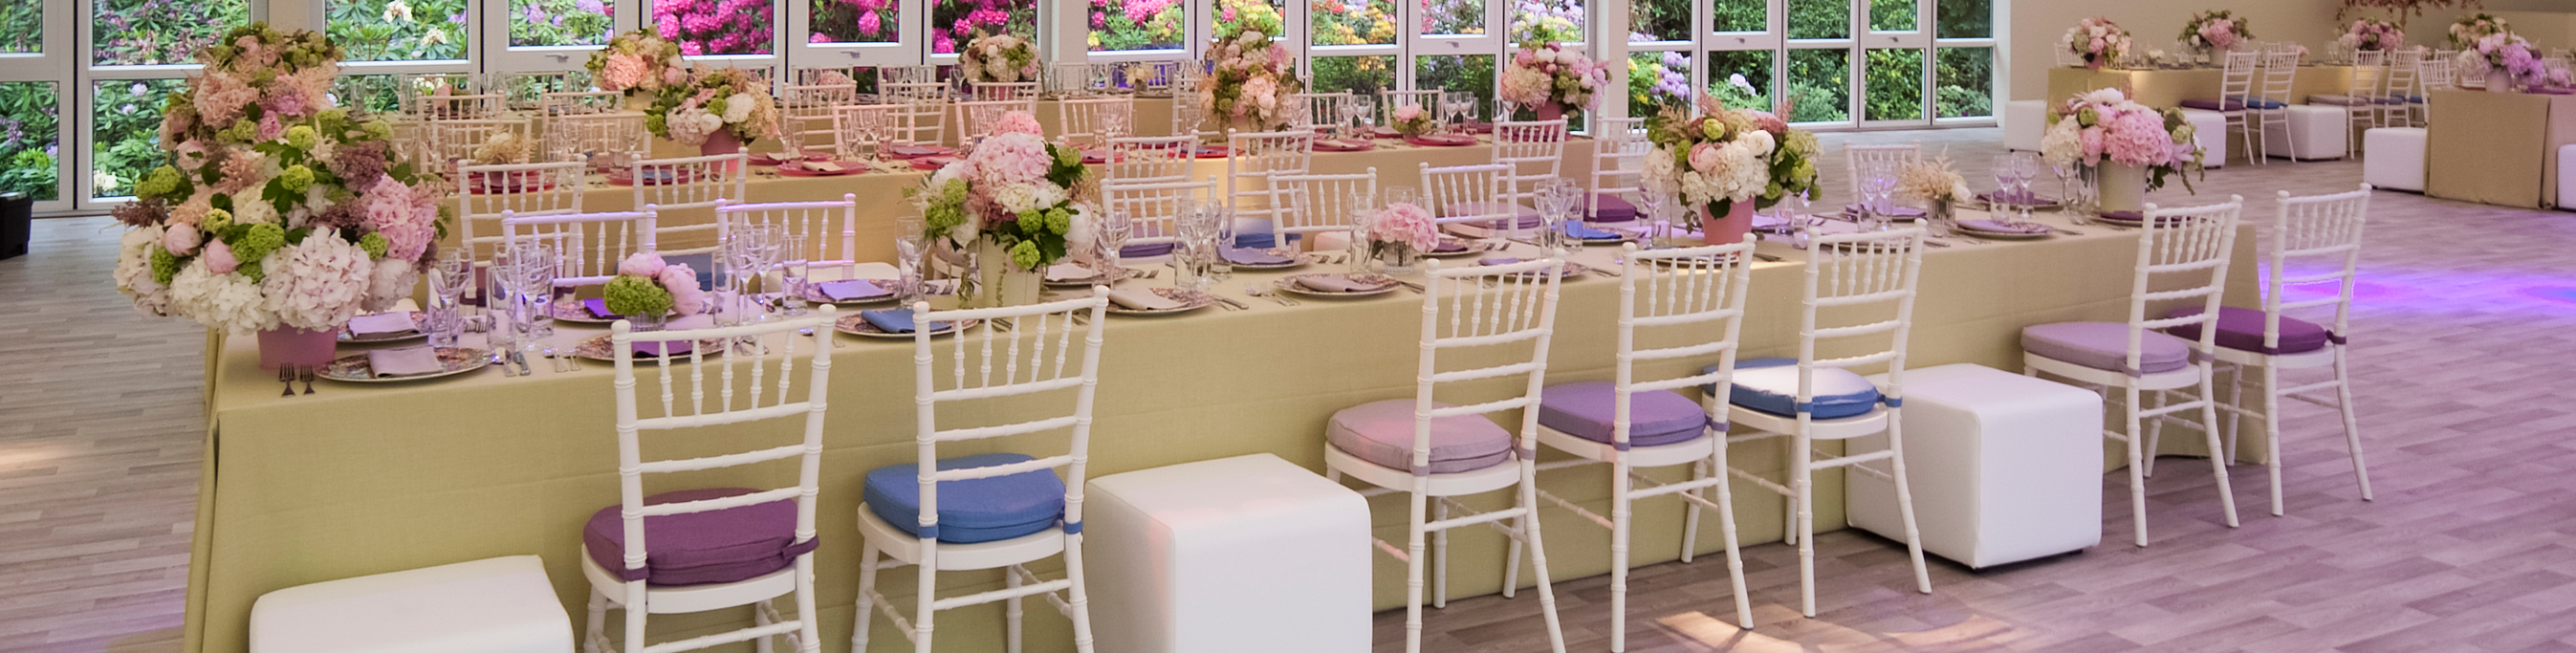 Hire everything you need to create stunning looking tables at your event